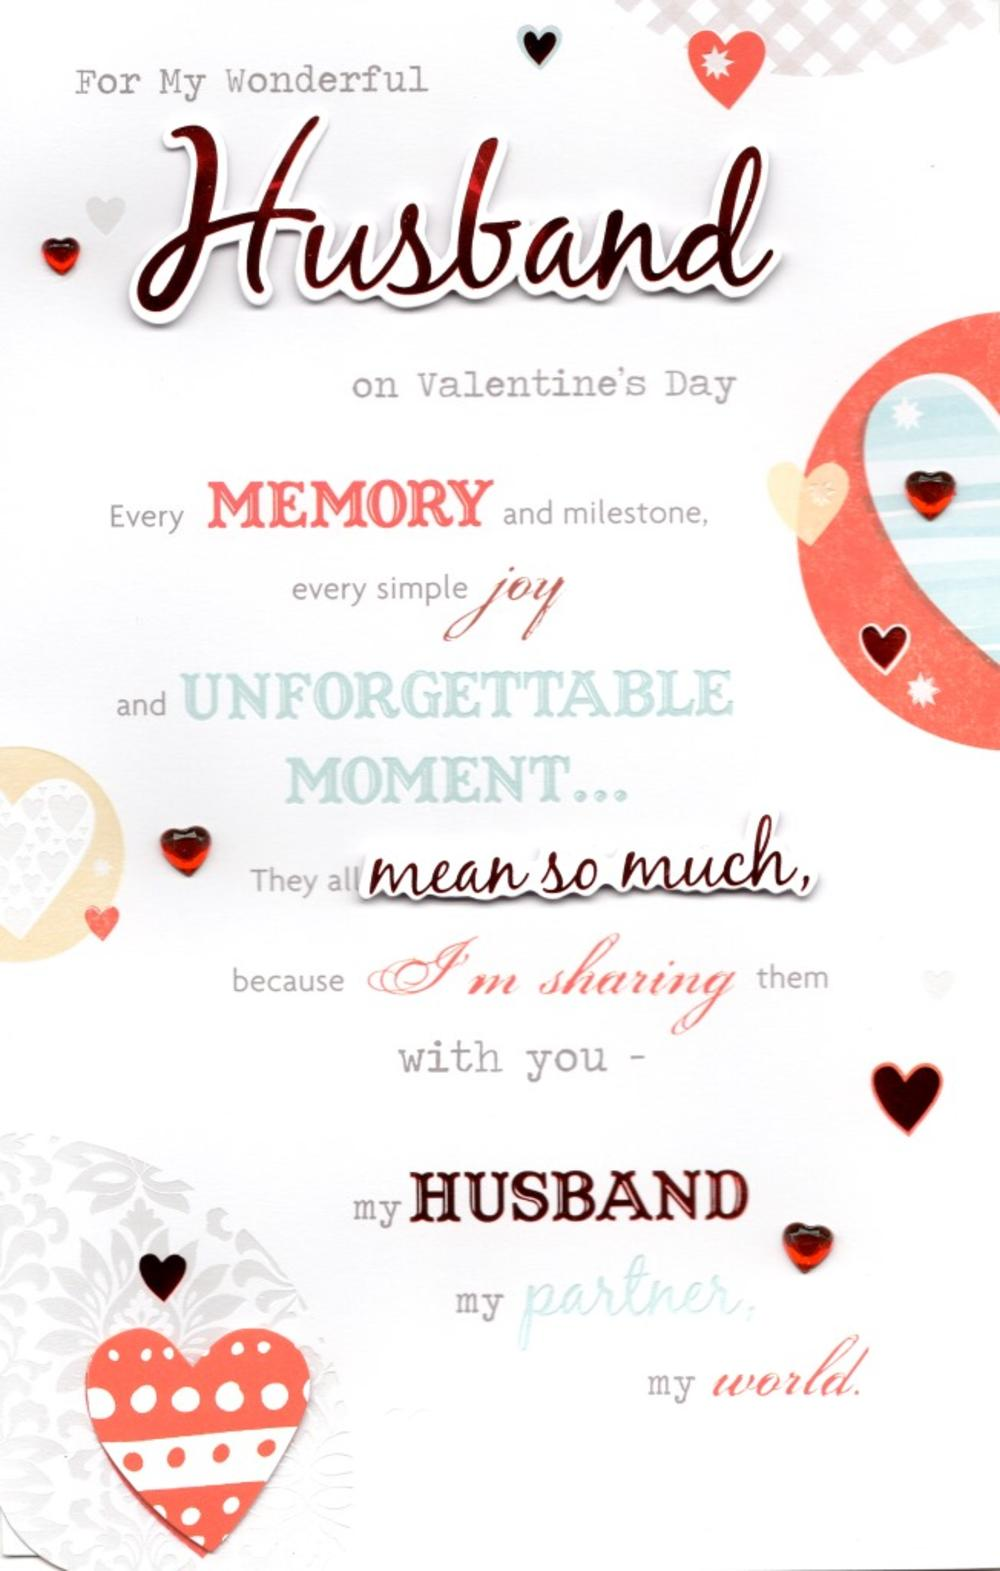 Husband Valentine's Day Greeting Card